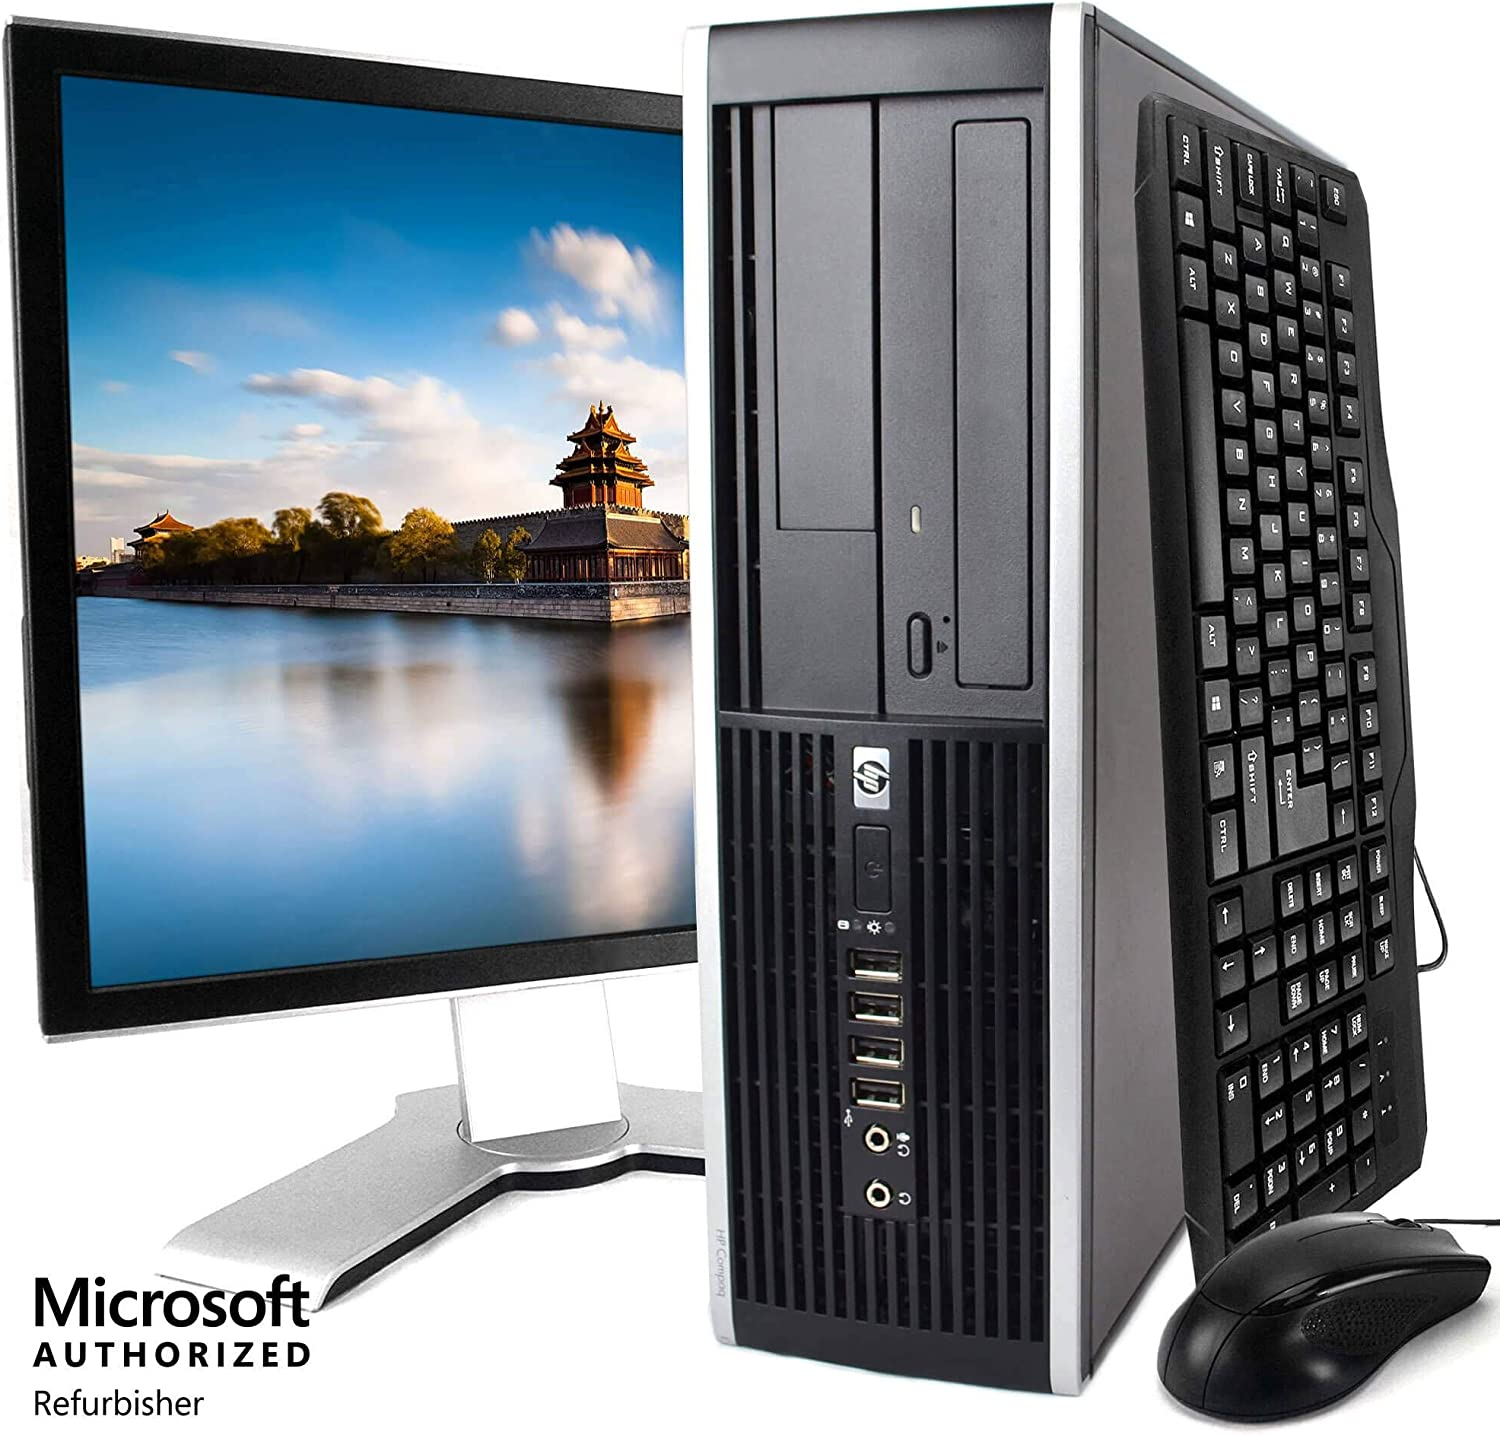 HP Elite Desktop PC Package, Intel Core 2 Duo Processor, 8GB RAM, 500GB Hard Drive, DVD, Wi-Fi, Windows 10, 19in LCD Monitor (Renewed)